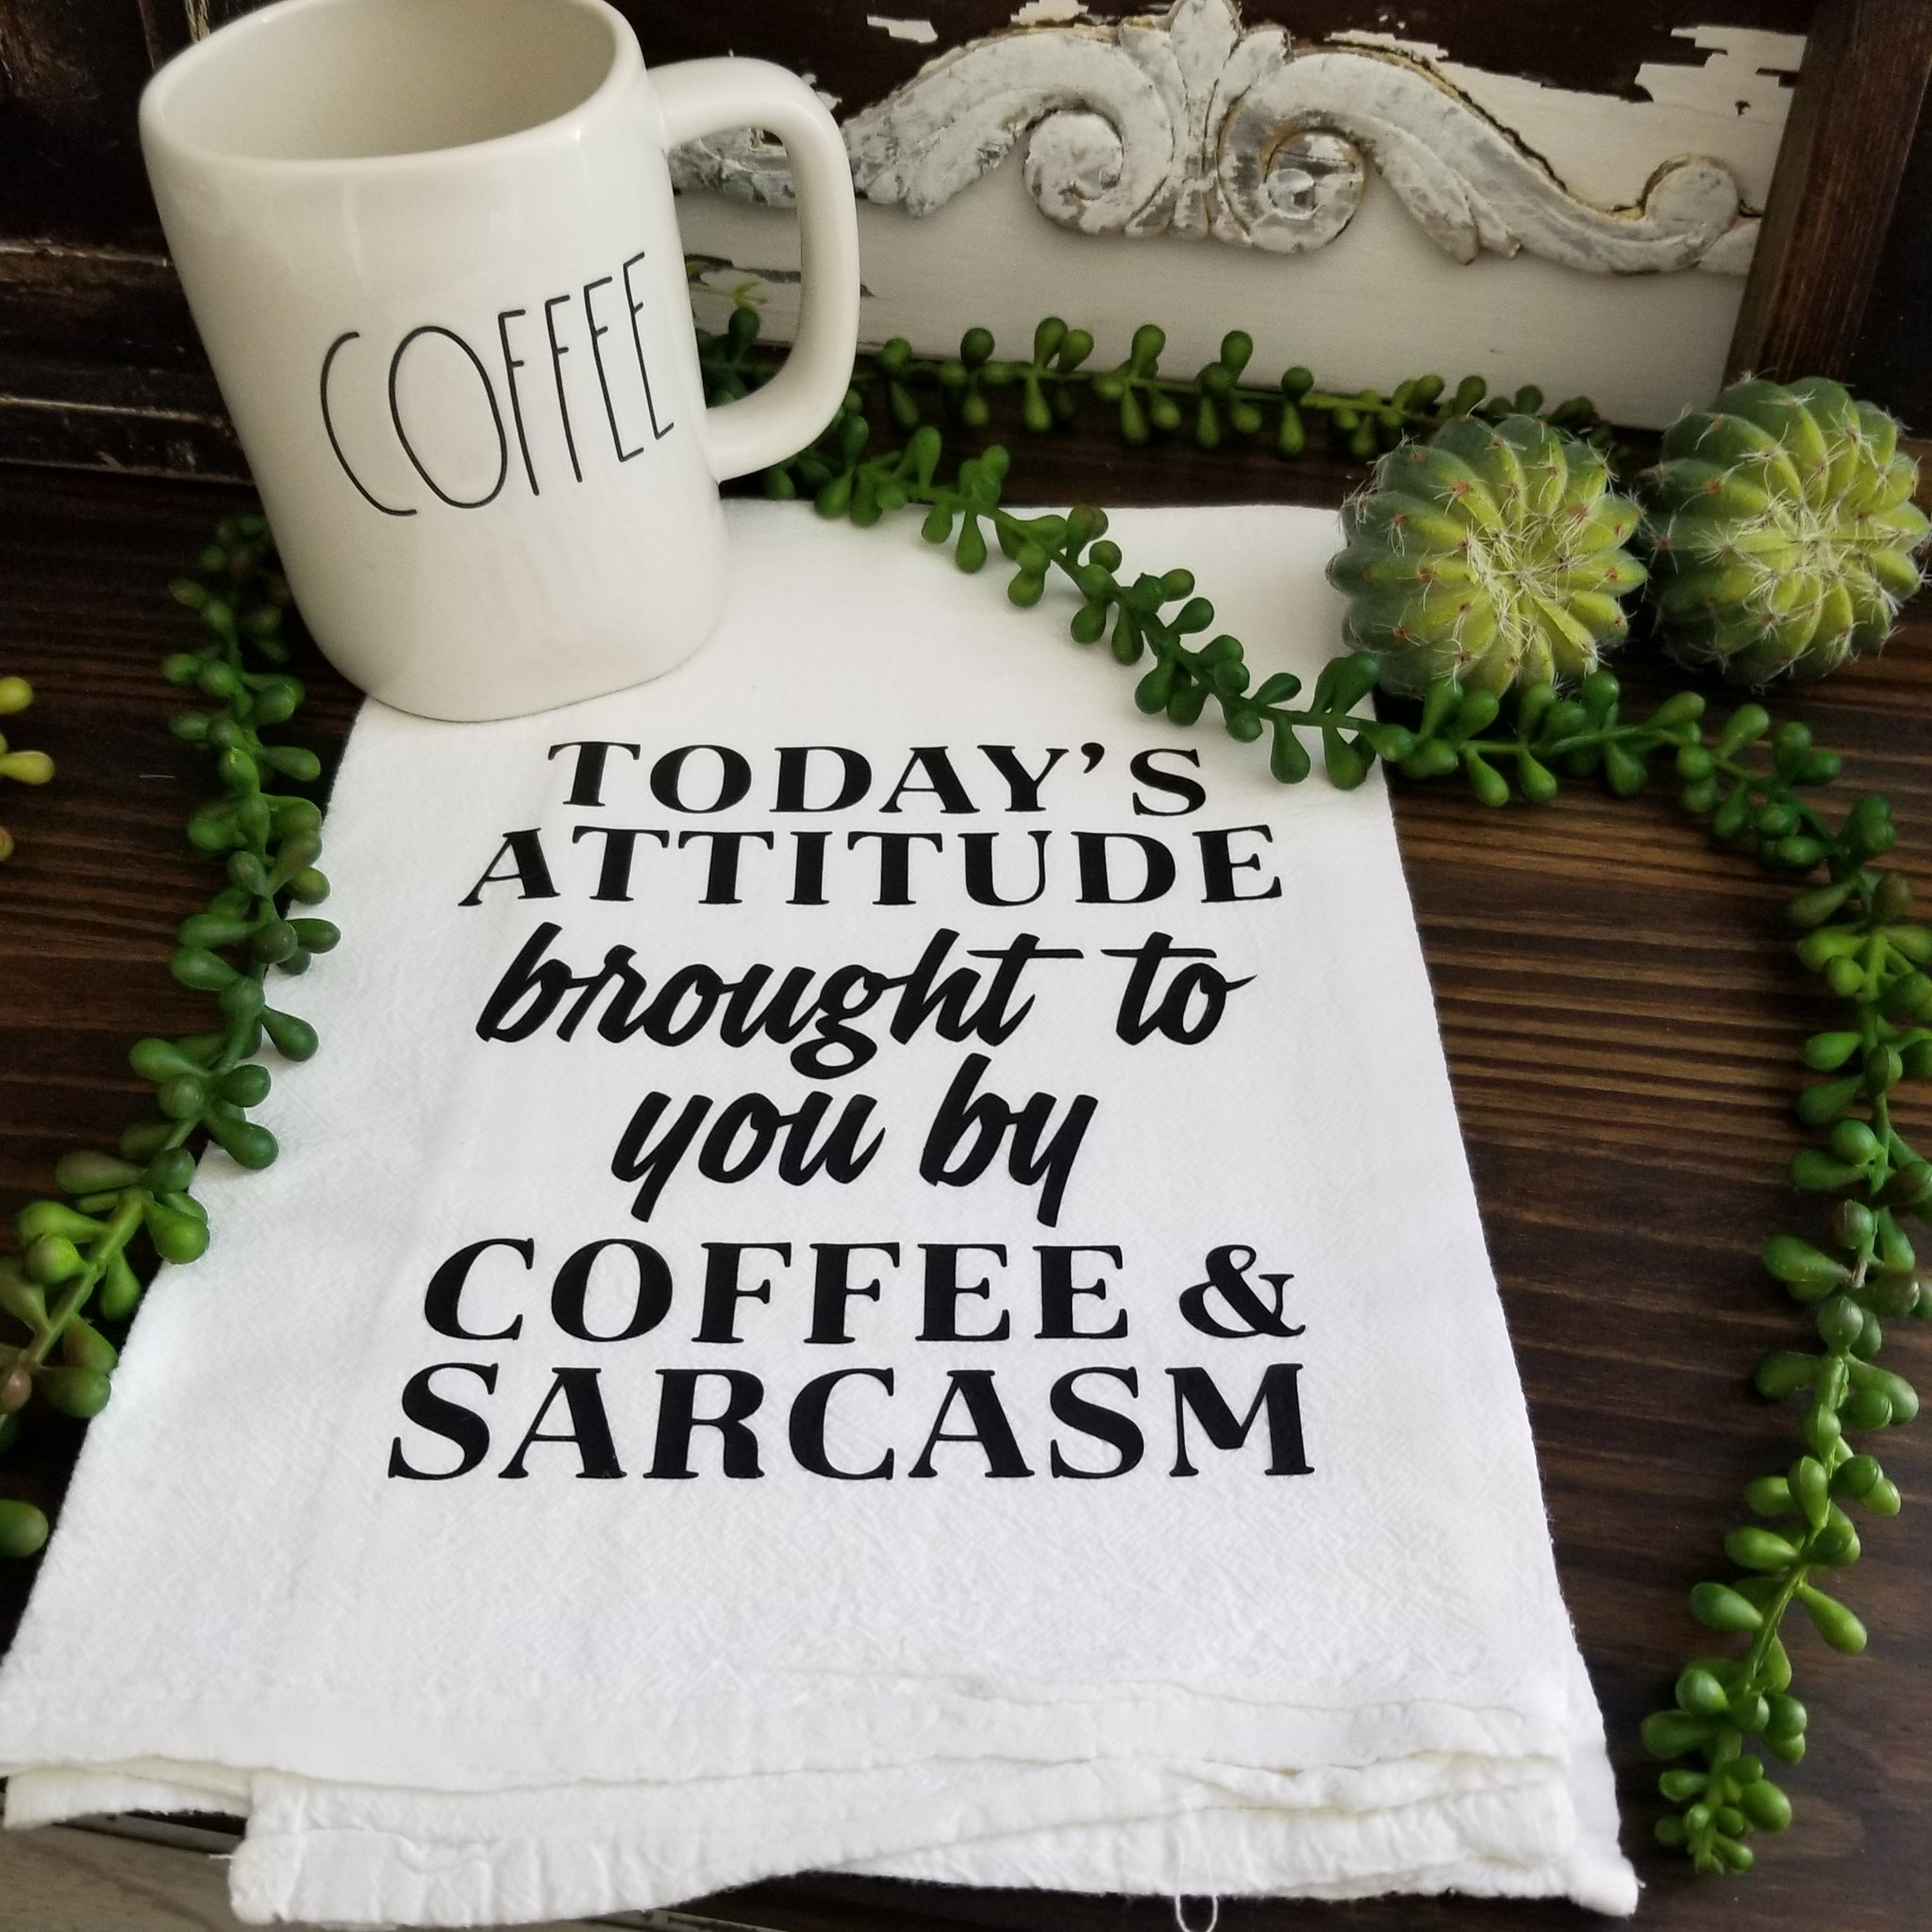 Coffee and Sarcasm